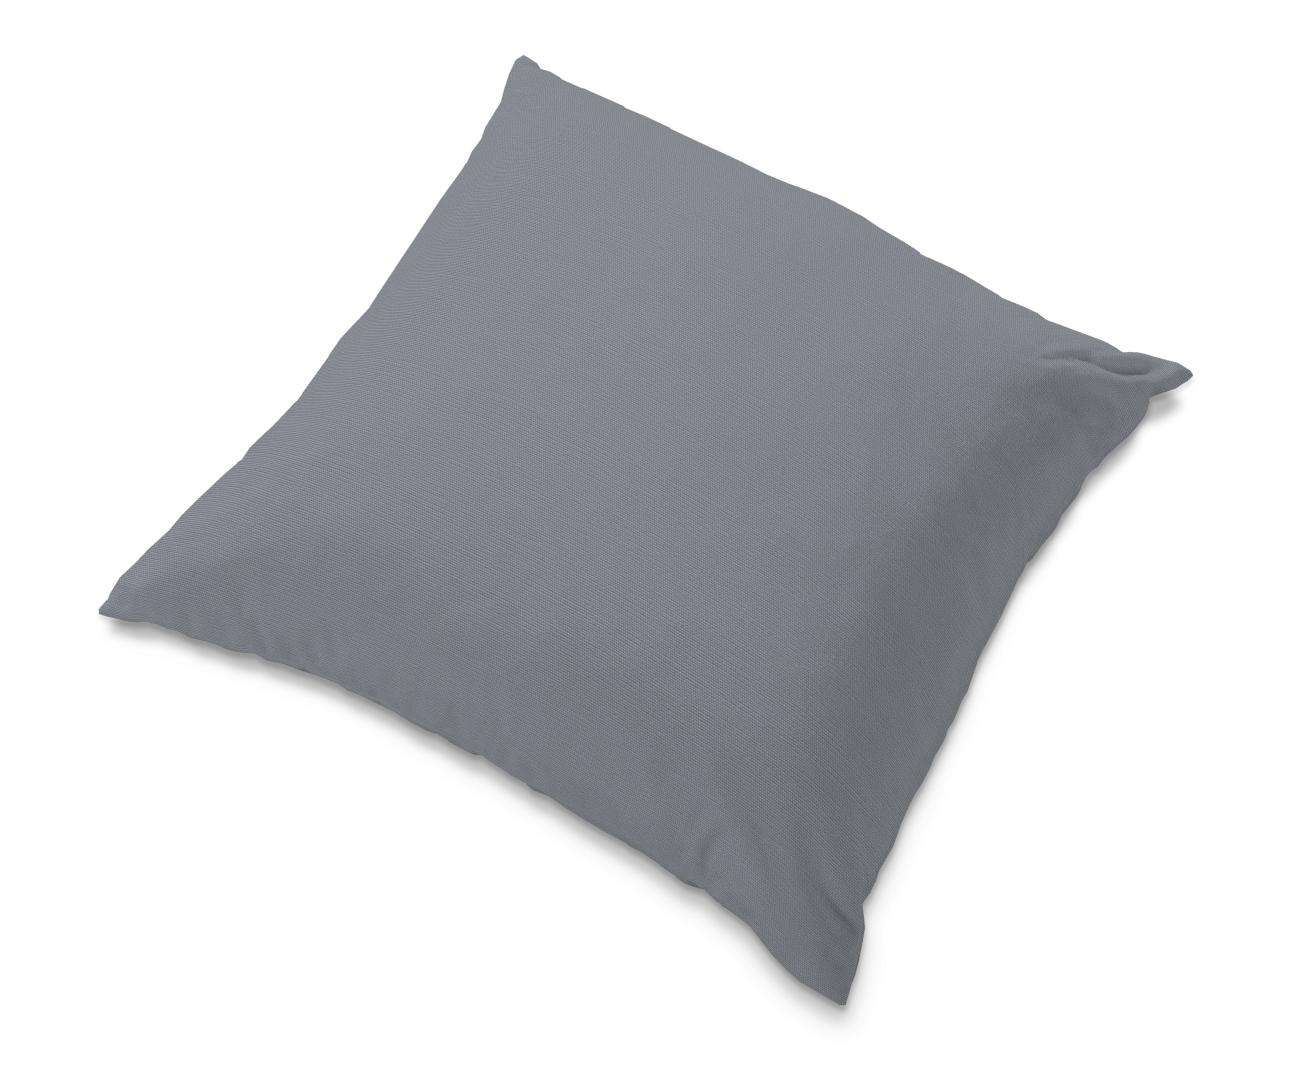 Cotton Panama, Slade grey